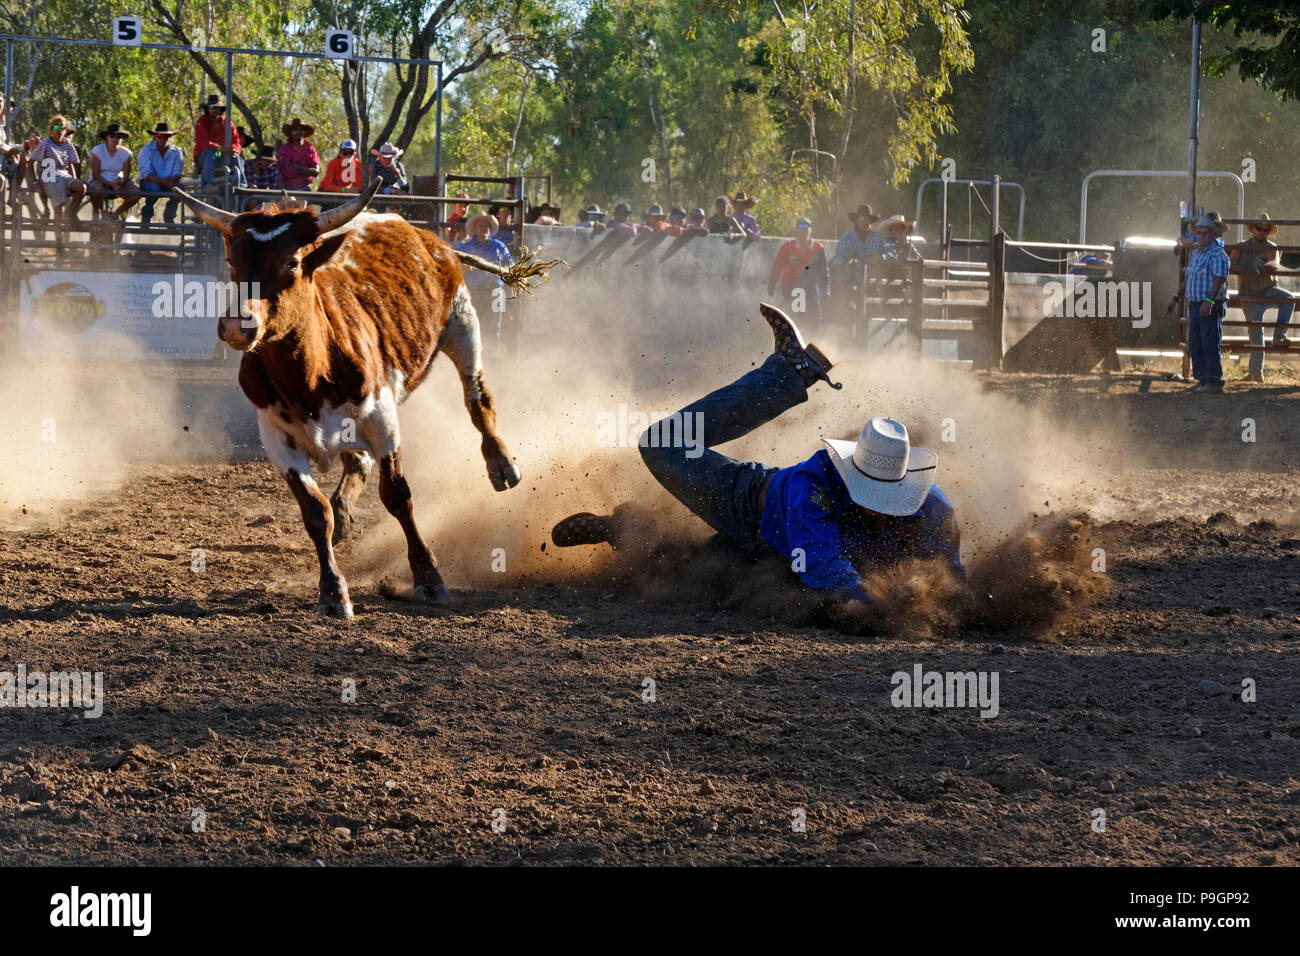 Cowboy falls to ground after tackling a steer, Fitzroy crossing, Kimberley,Northwest Australia - Stock Image